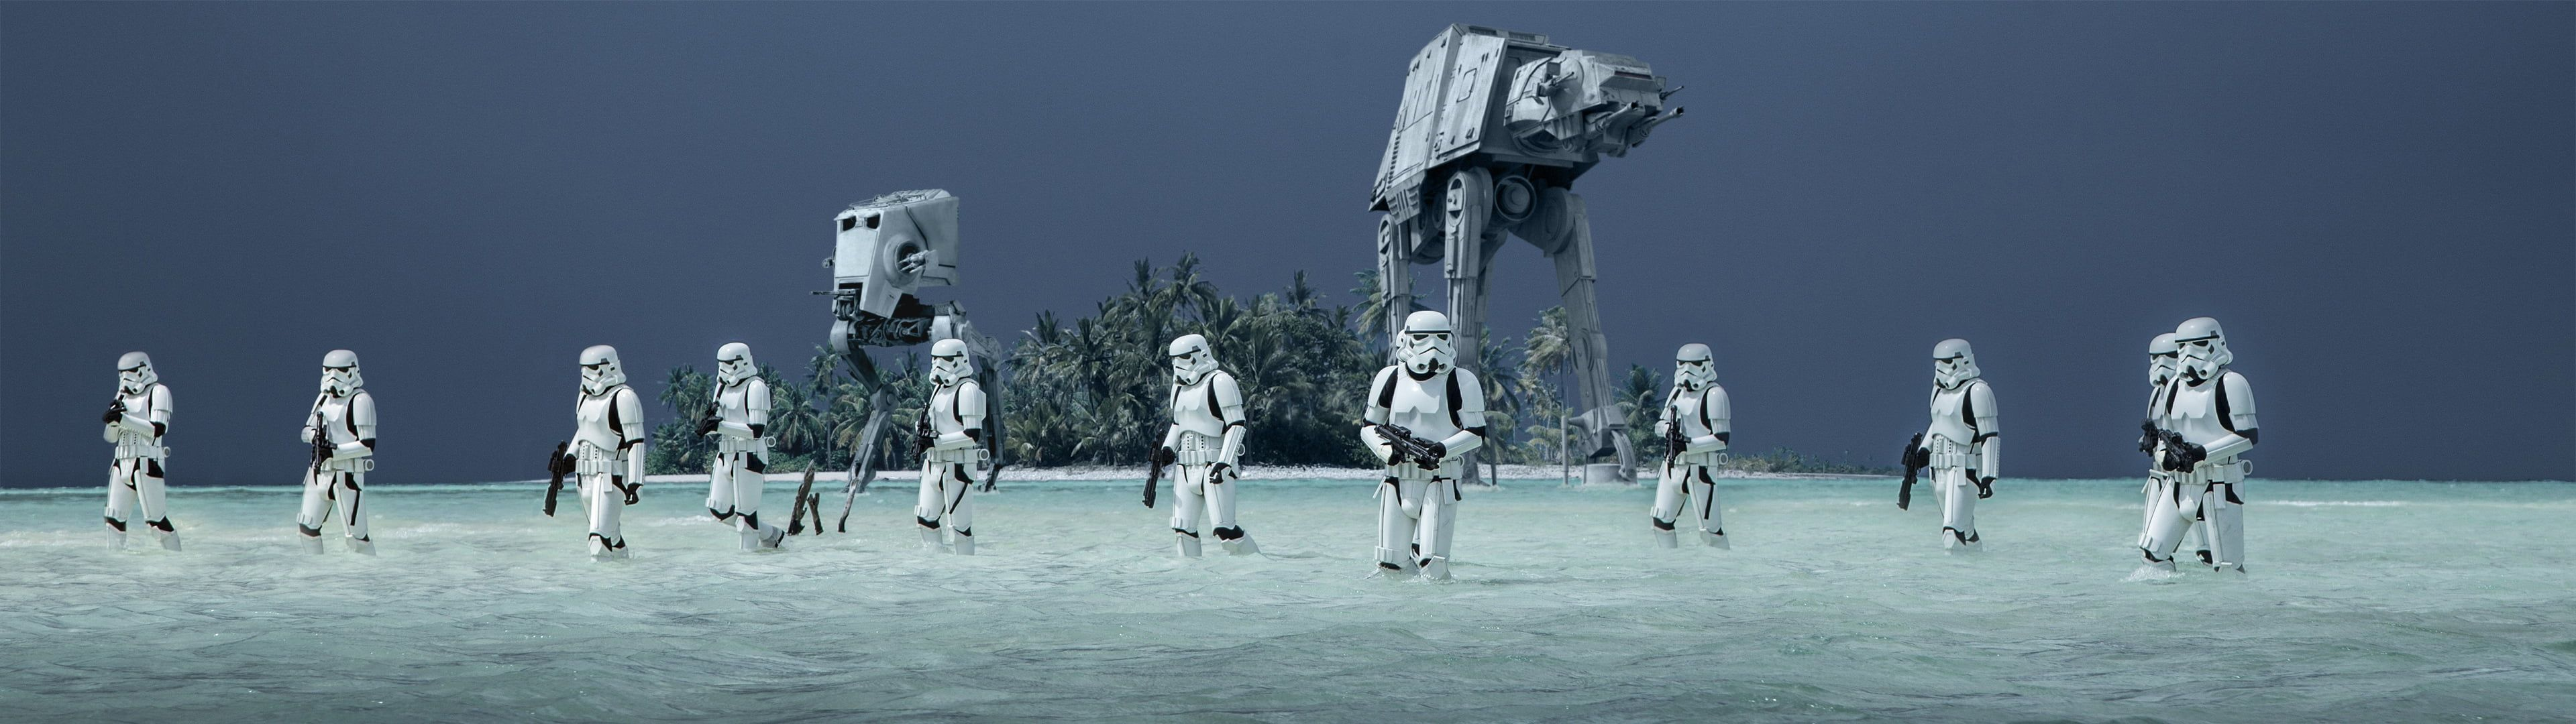 Storm Troopers Star Wars Rogue One A Star Wars Story Storm Troopers At At Walker At St Walker At St At At Bea At At Walker Dual Monitor Wallpaper Star Wars Dual monitor wallpaper hd star wars